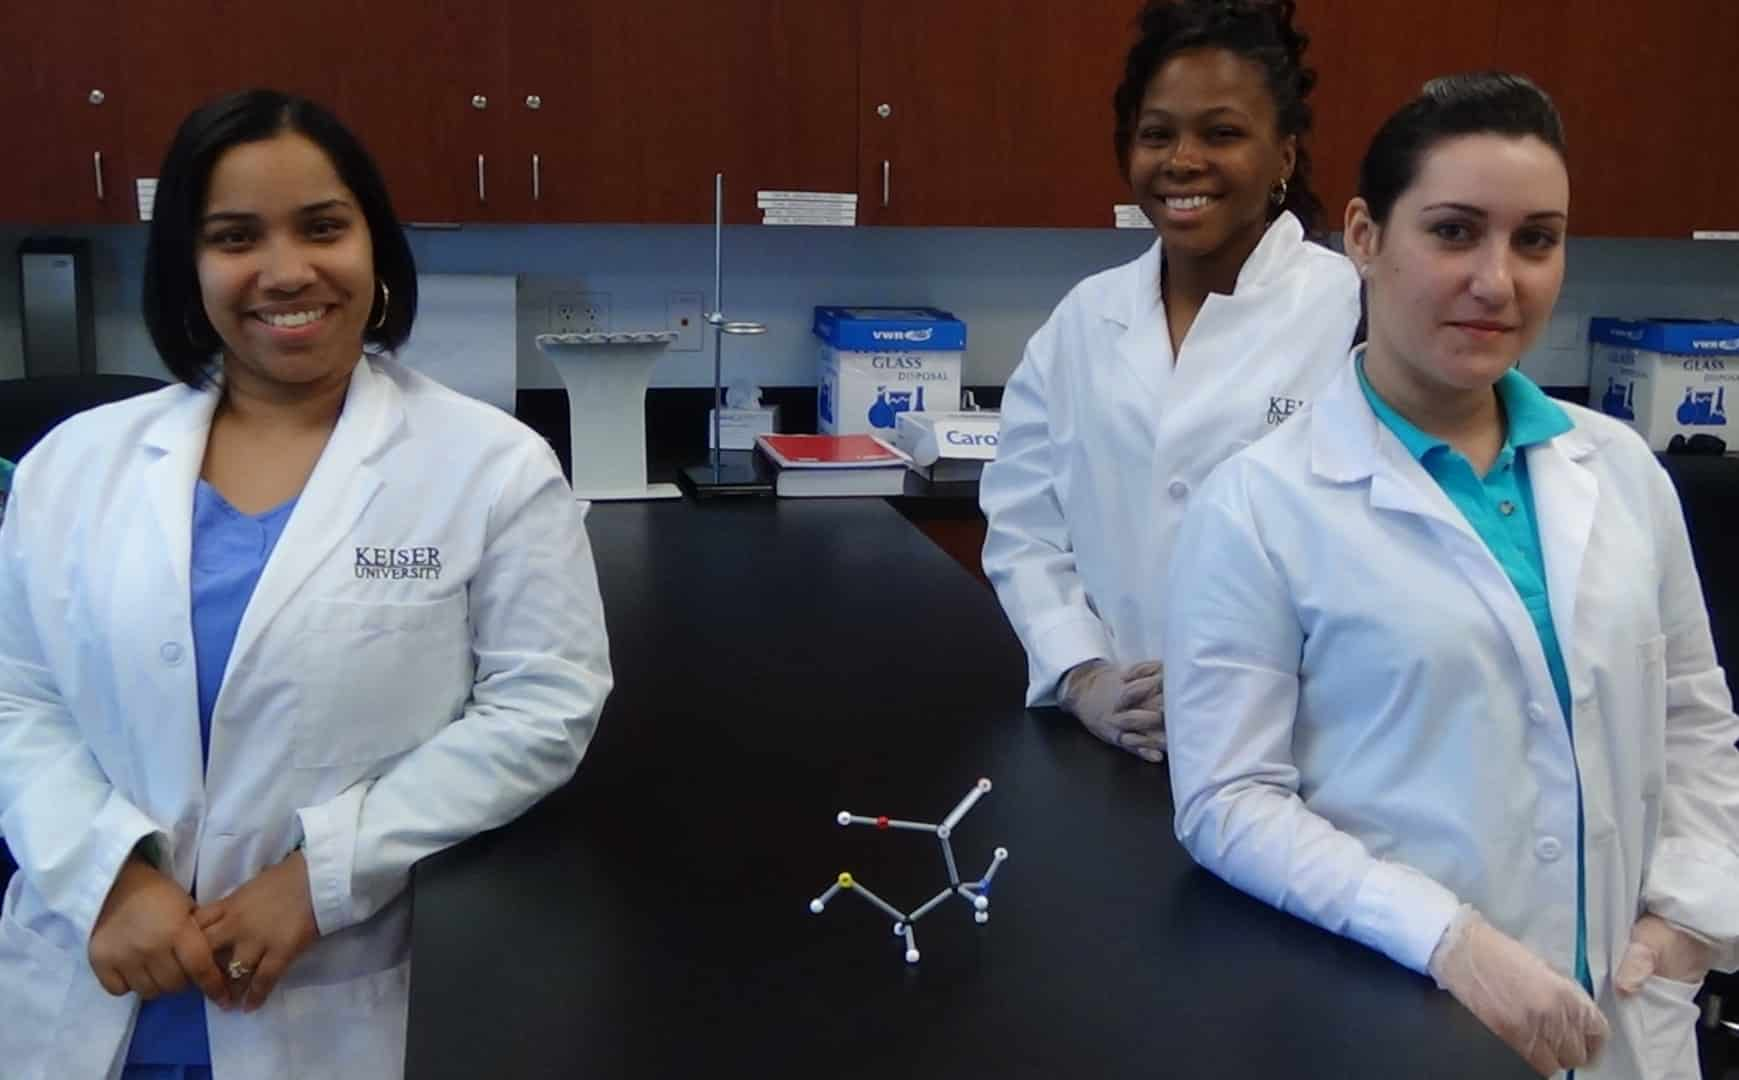 Fort Myers Biomedical Science Students Learn Stereochemistry Using Molecular Models